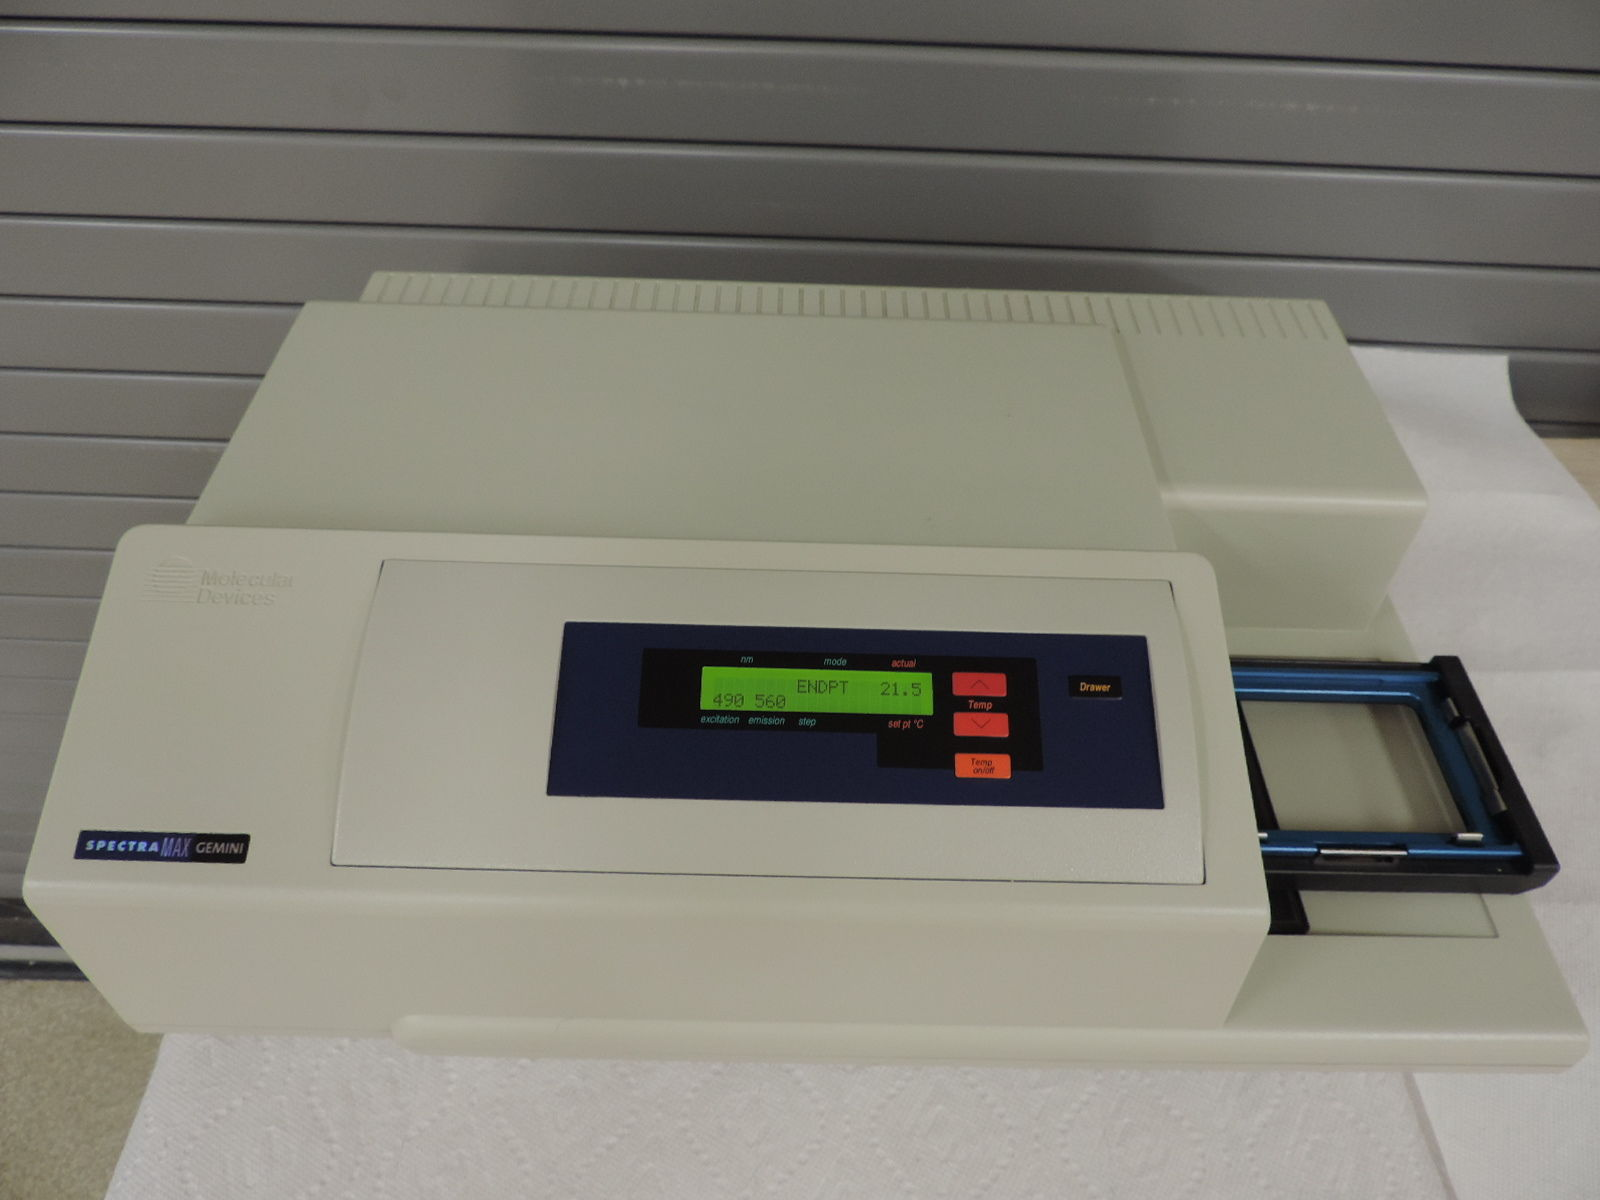 Molecular Devices™ Spectramax Gemini® Microplate Spectrophotometer